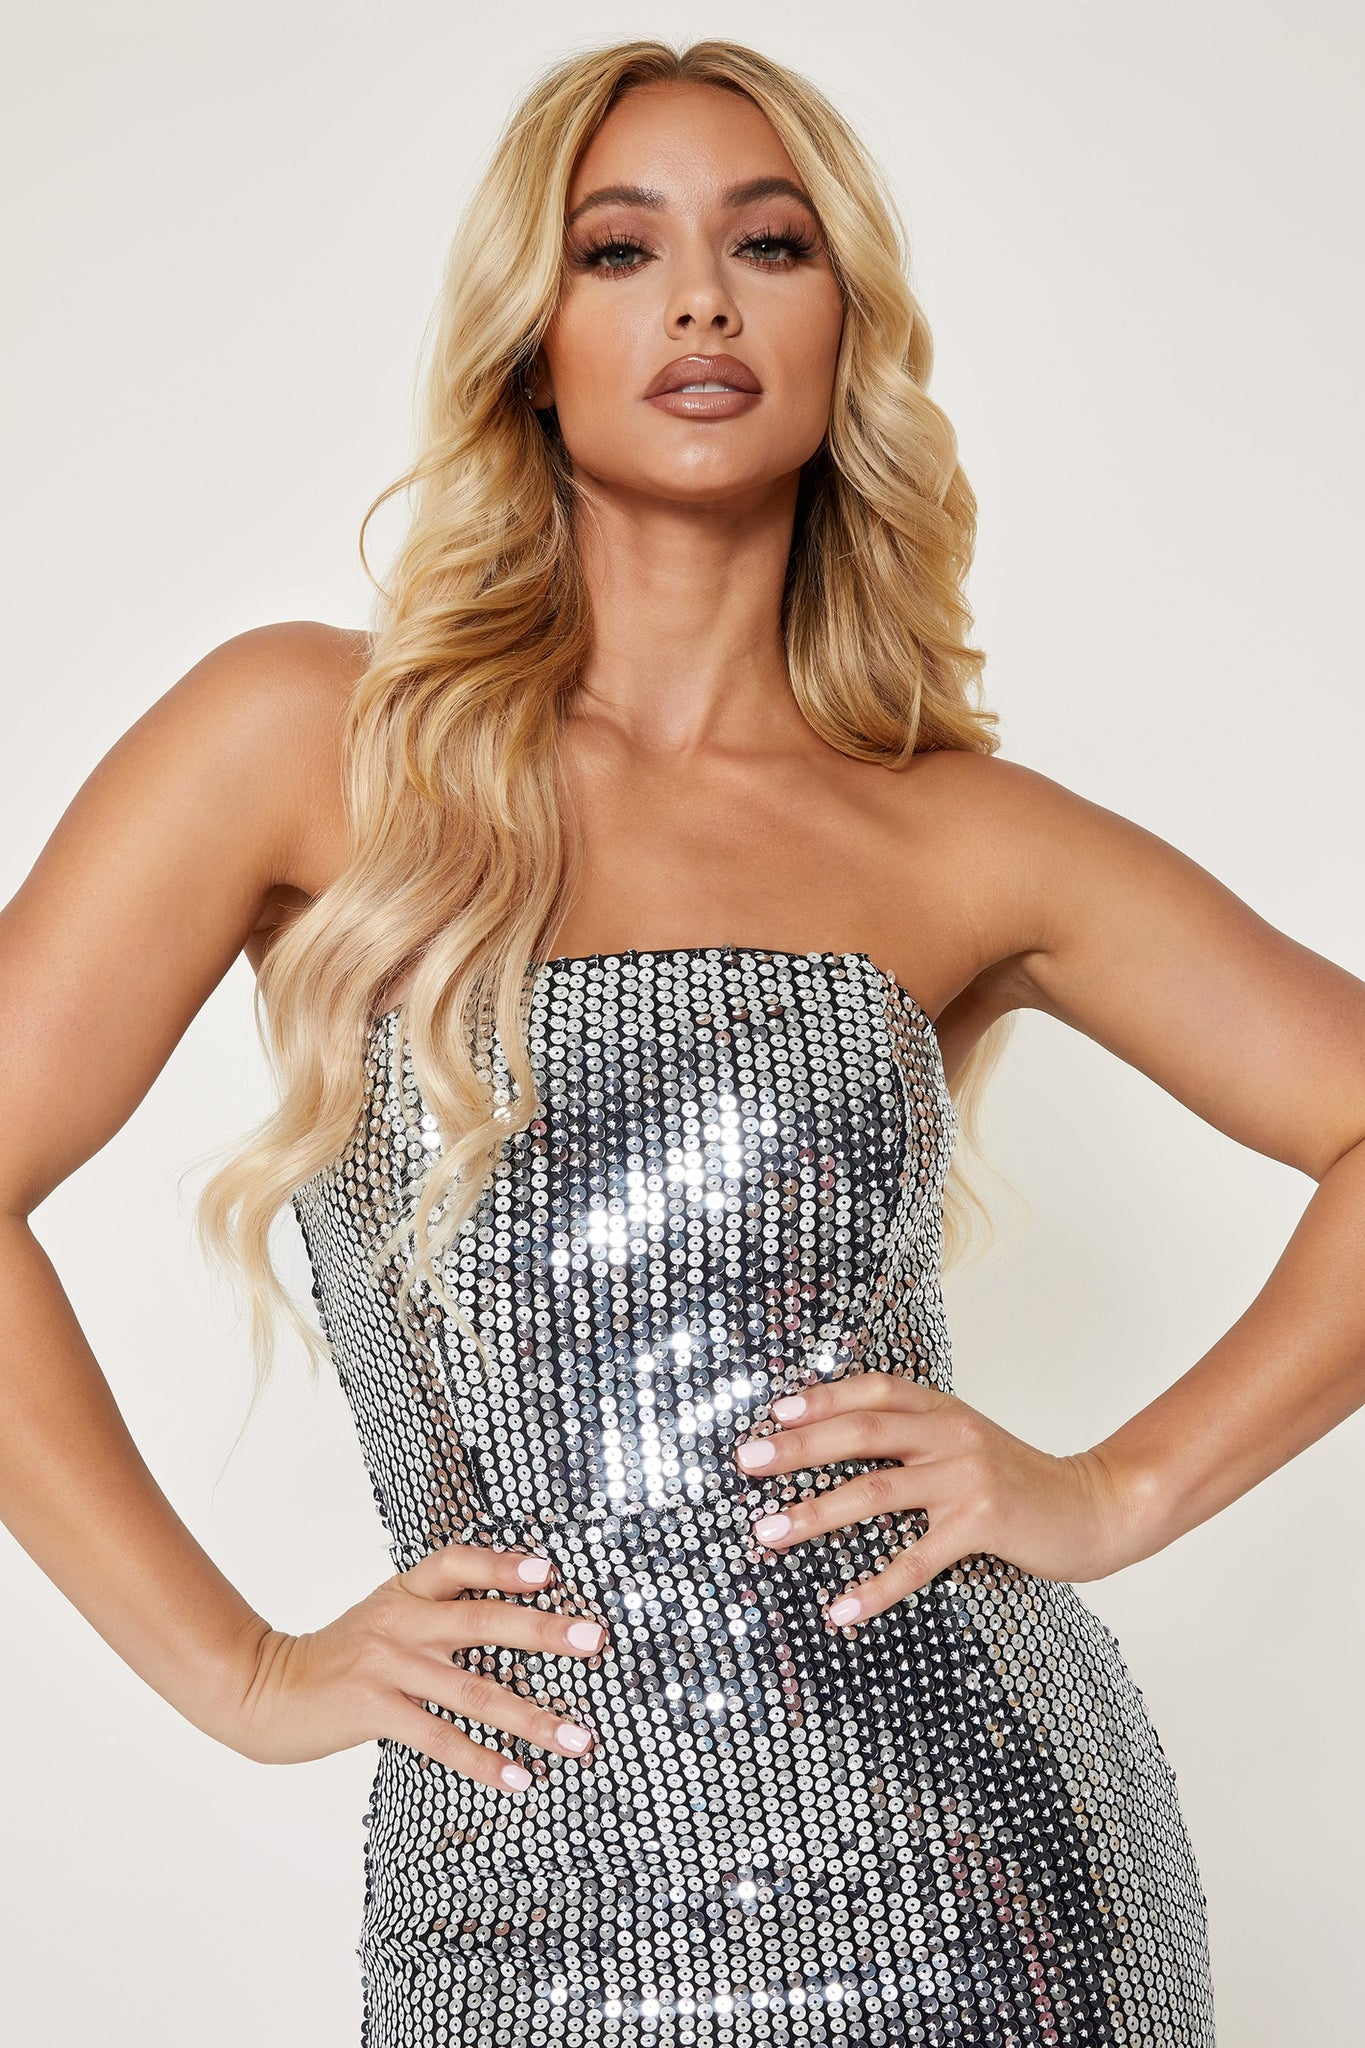 Nikki Mirror Sequin Strapless Dress - Silver - MESHKI